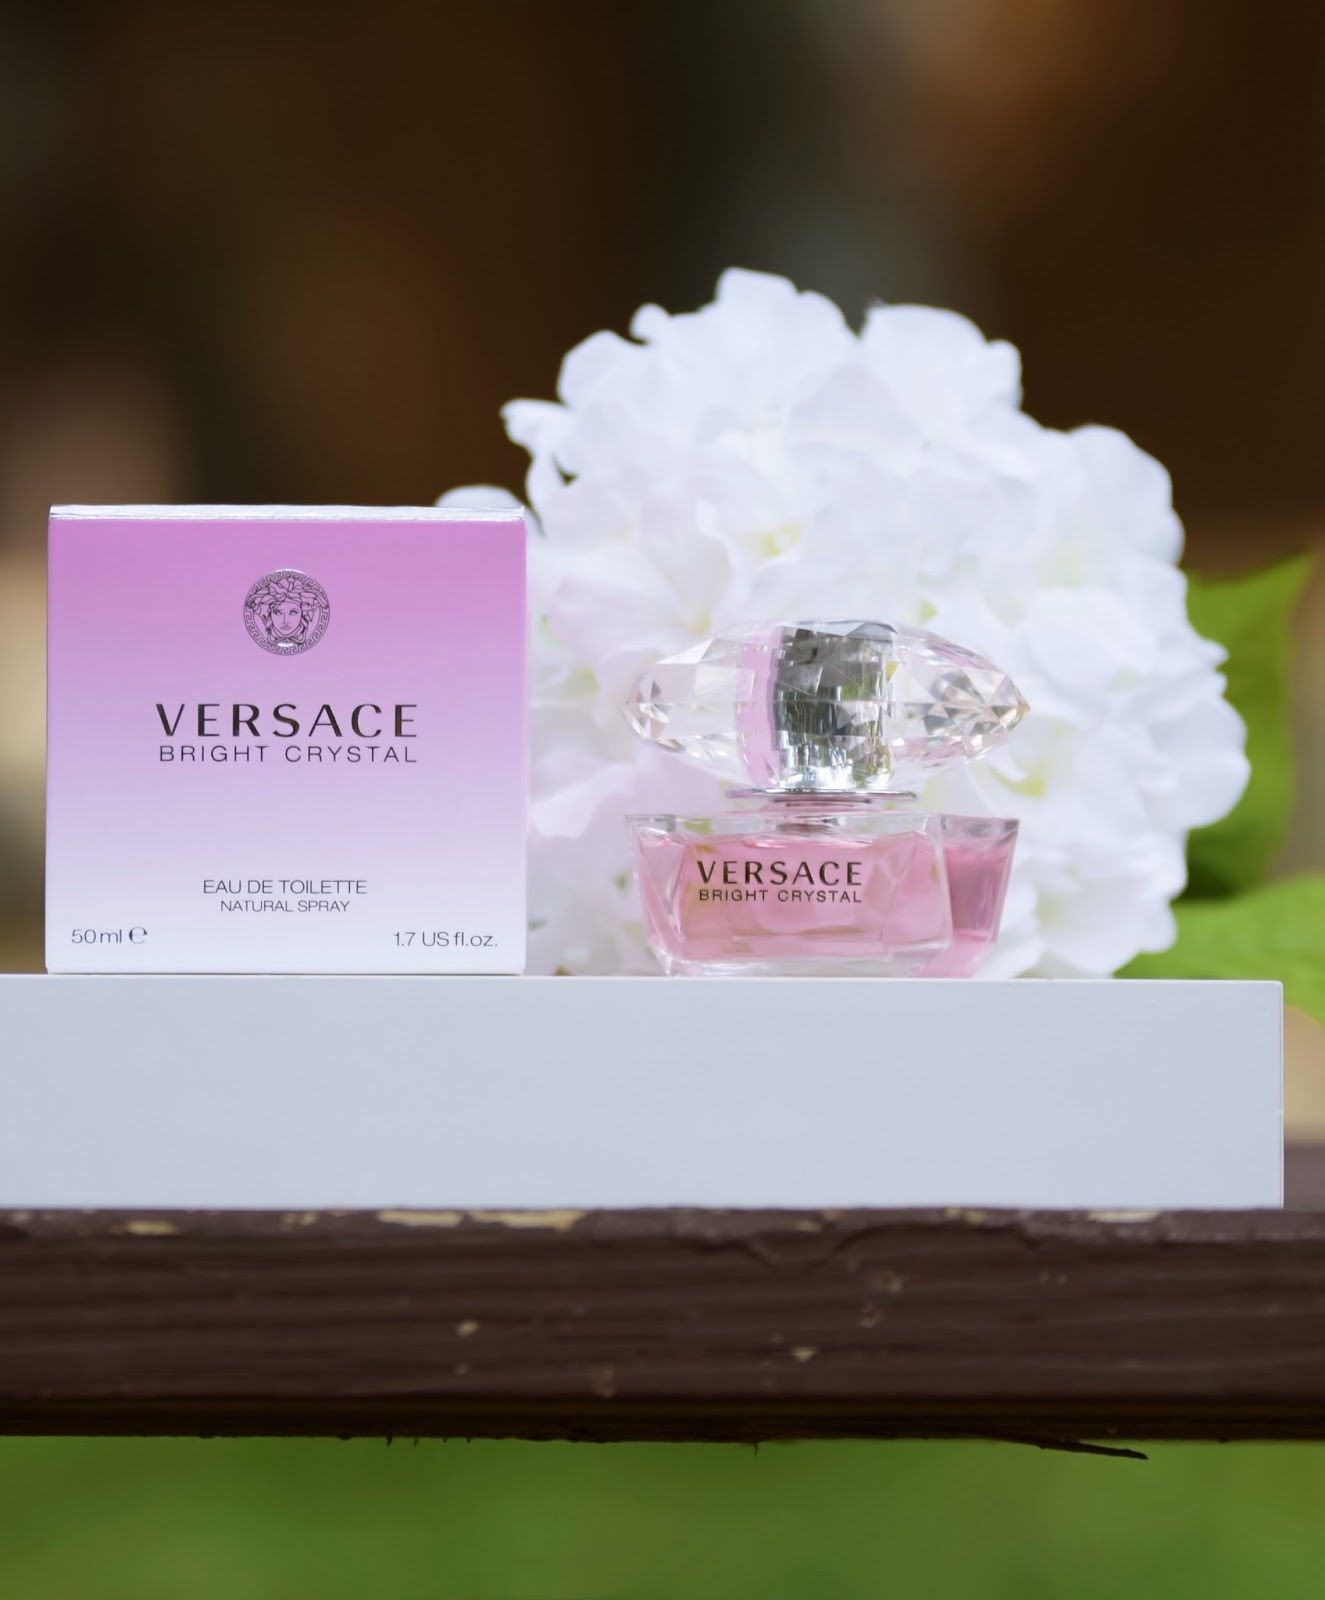 Fragrances net, versace crystal light, perfume, where to buy perfume online, pink, women gift ideas